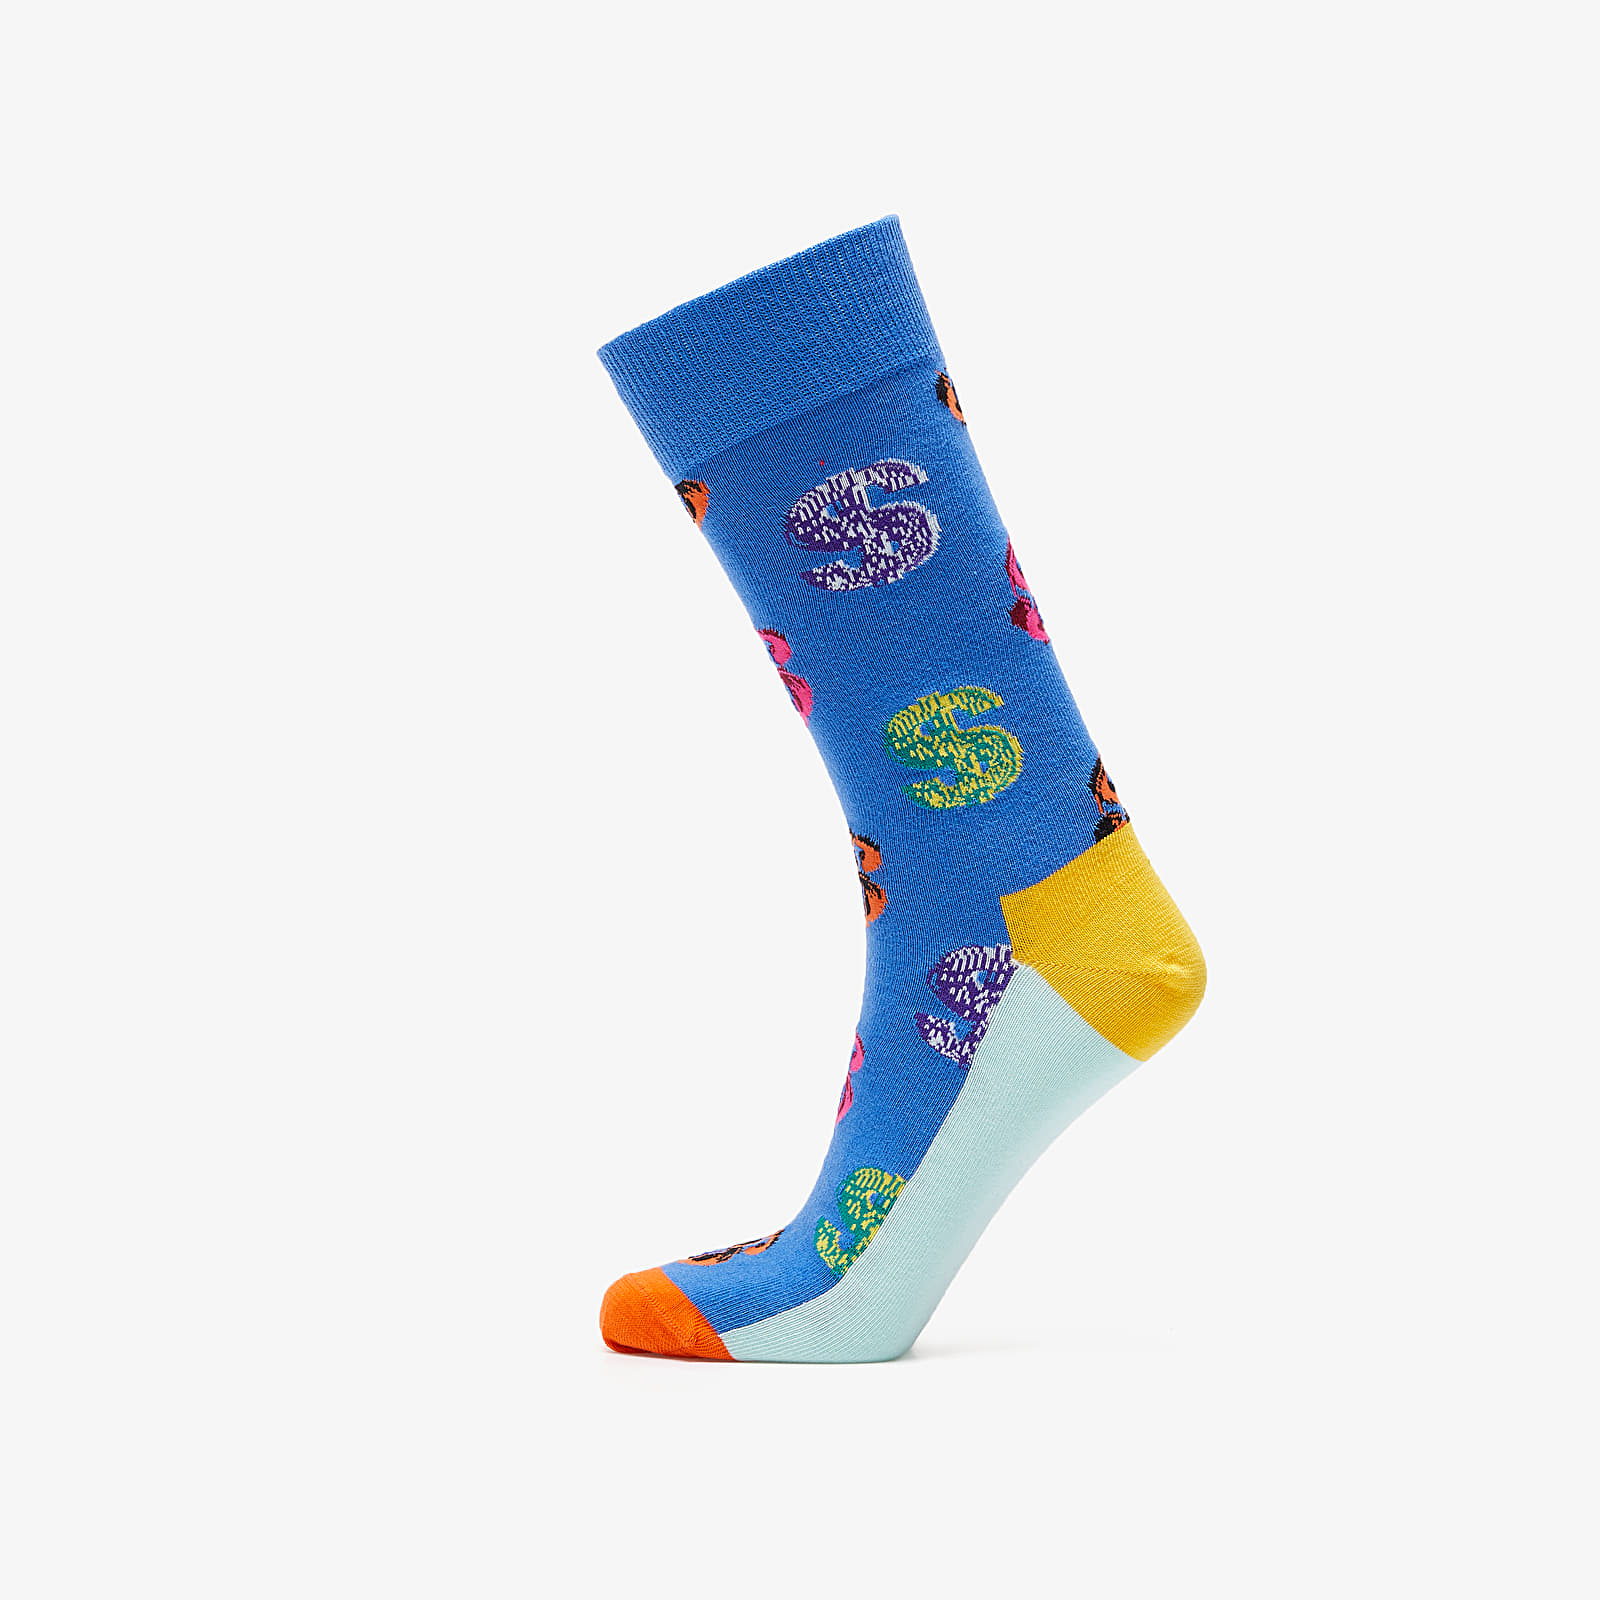 Calzetti Happy Socks Andy Warhol Dollar Socks Multicolor